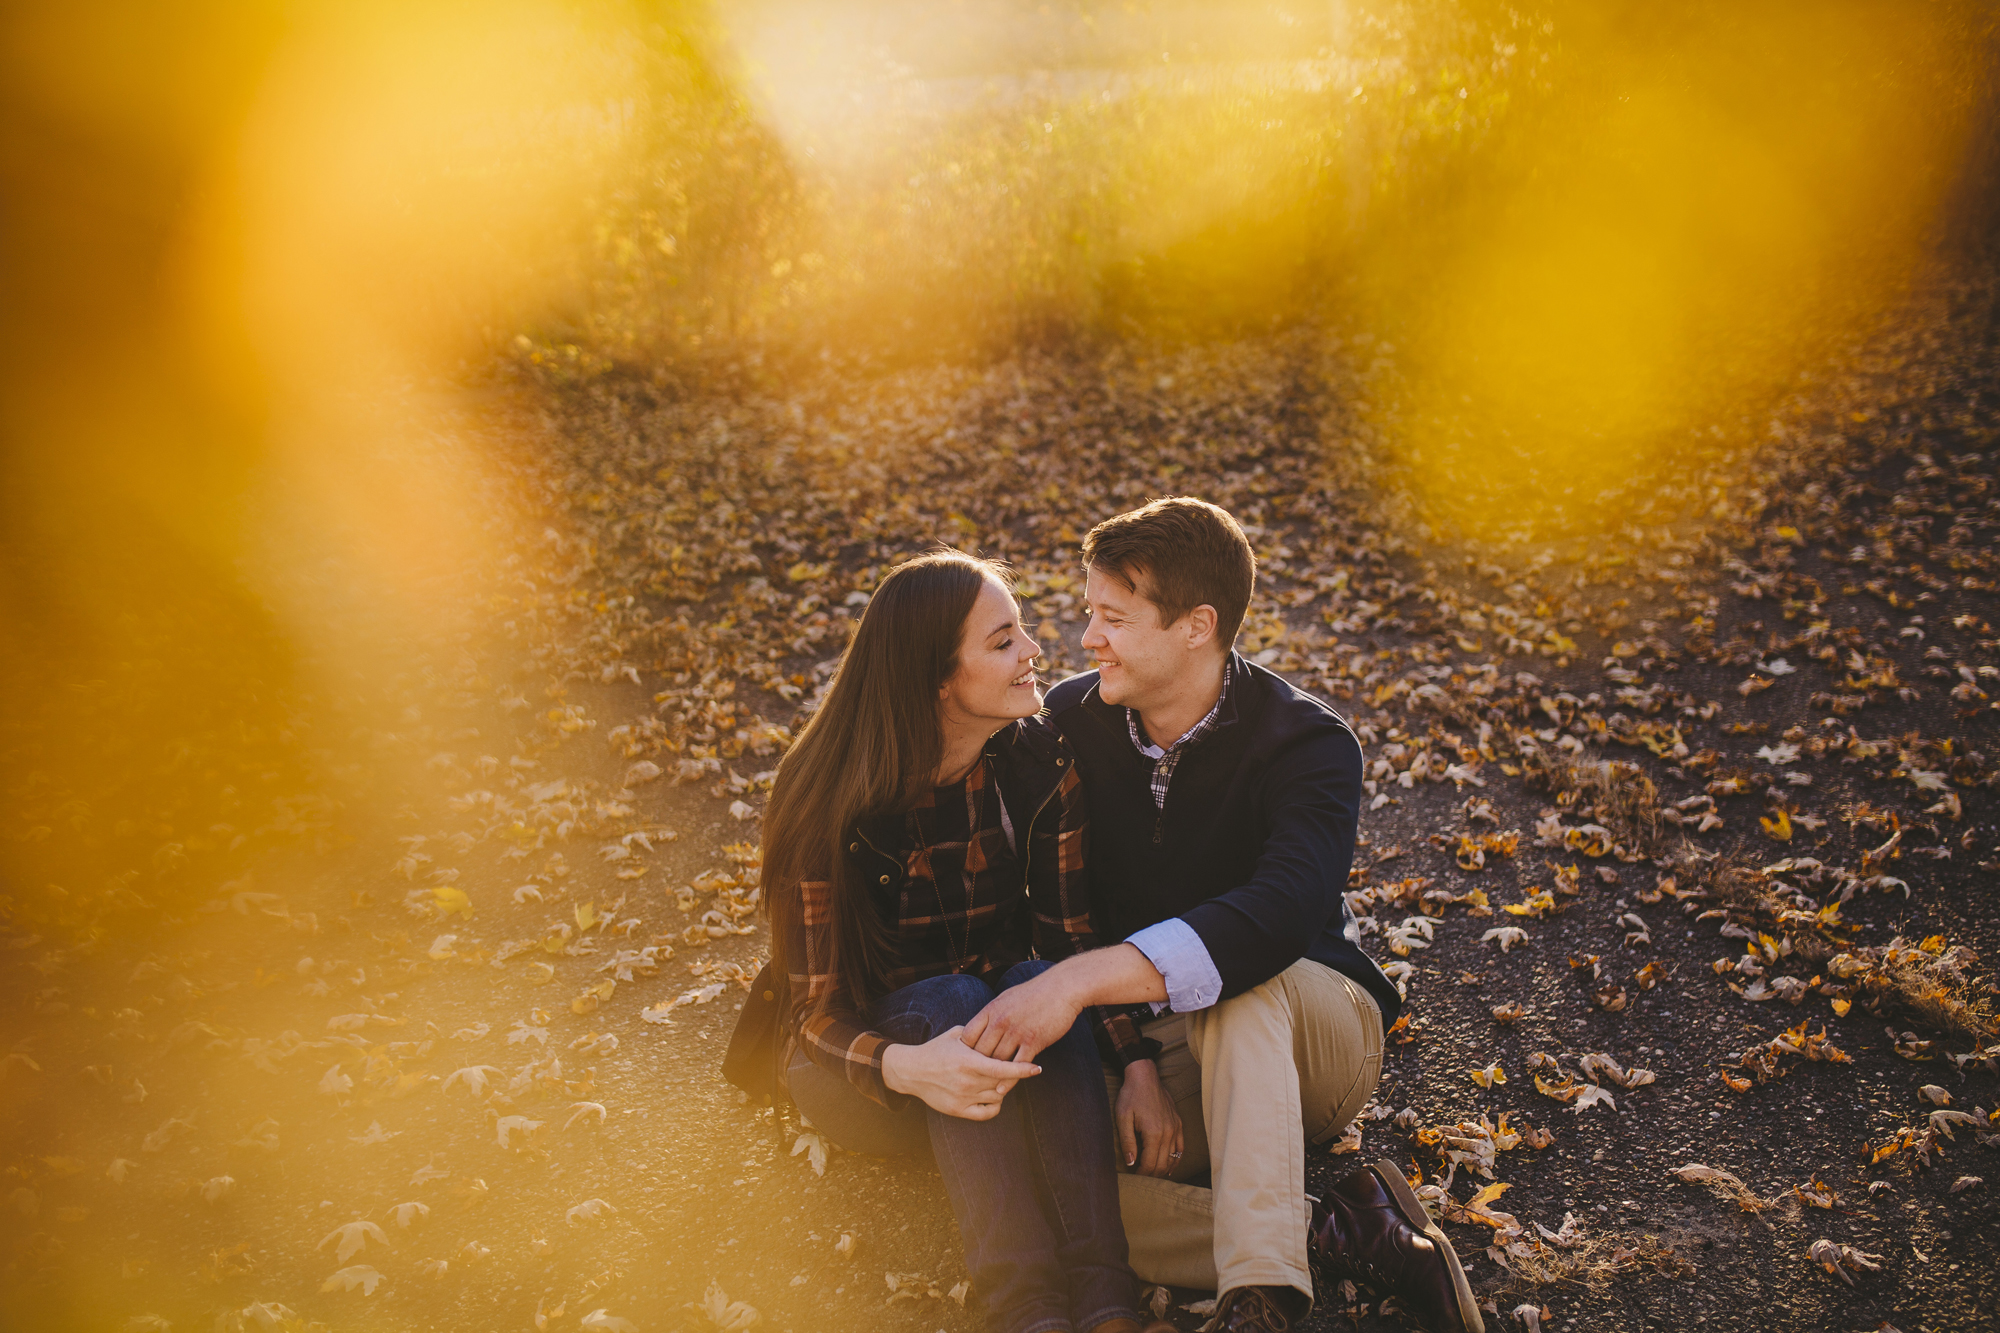 Brandon werth minnesota wedding photographer fort snelling state park engagement session